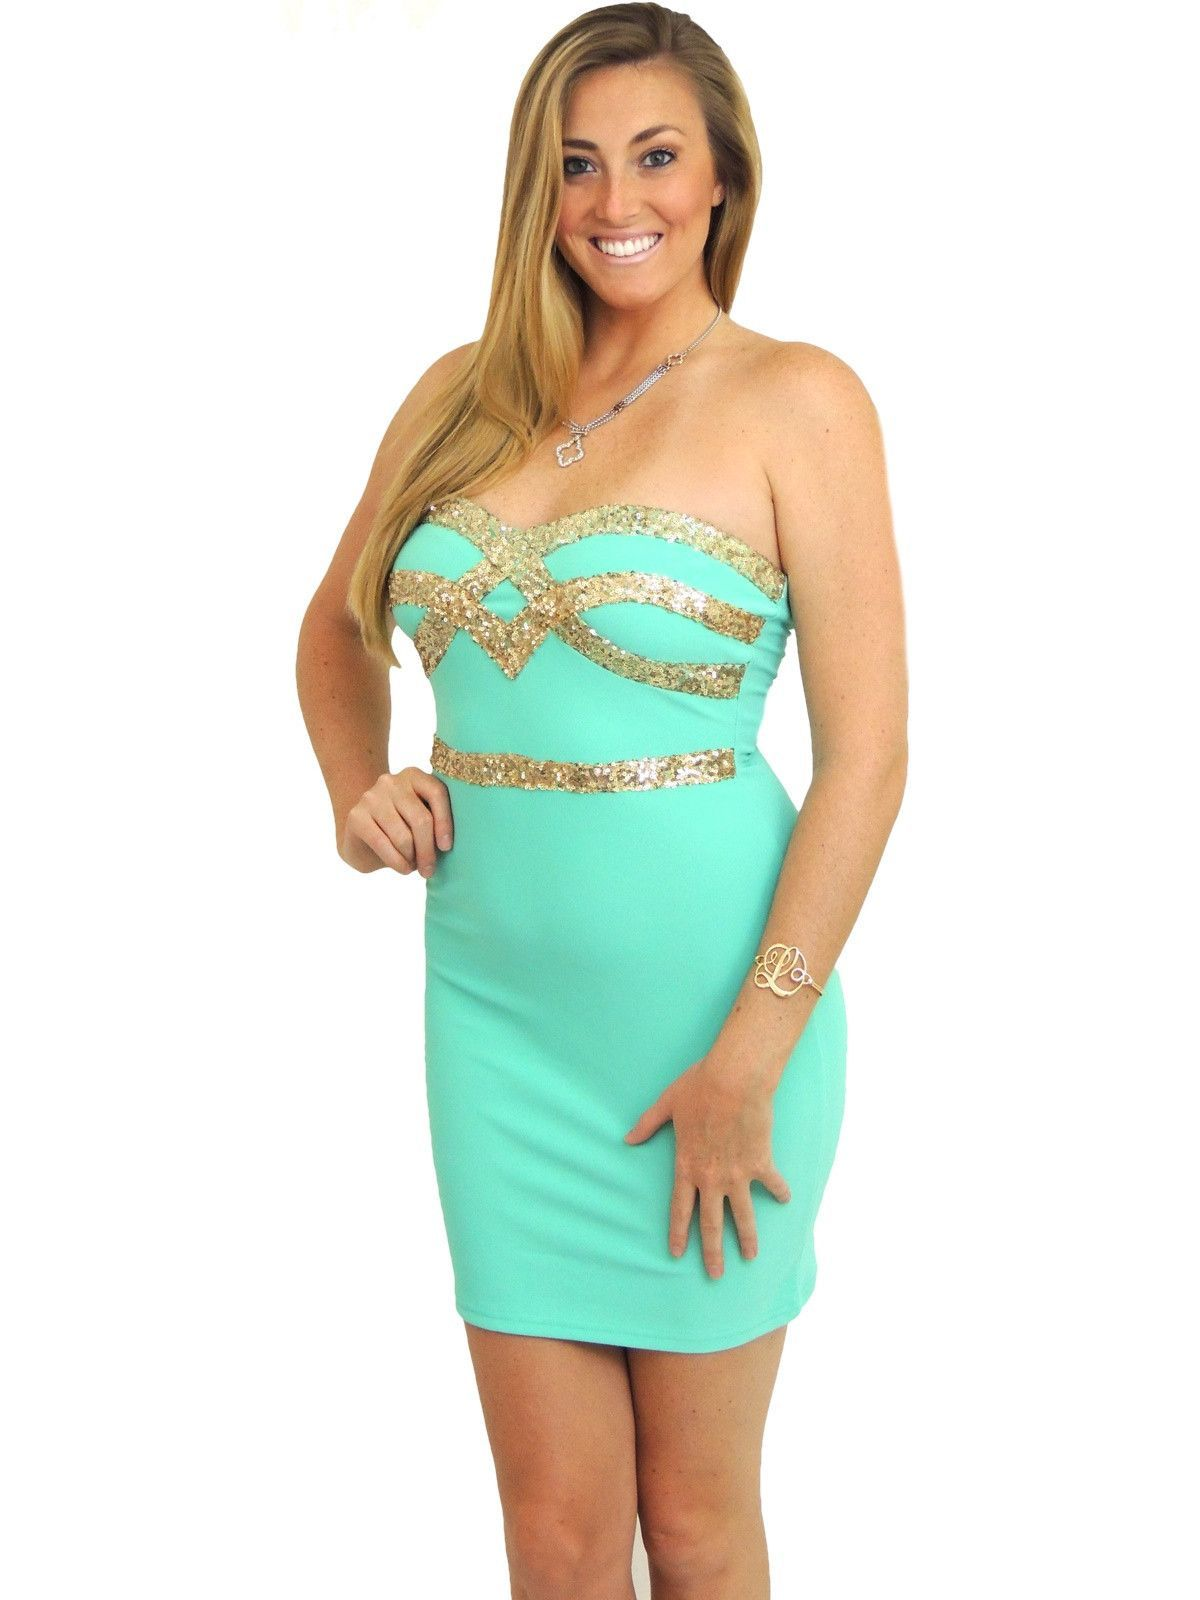 Makeup with mint green dress  Crown Jewels Sweetheart Dress  Mint  Sweetheart dress Crown